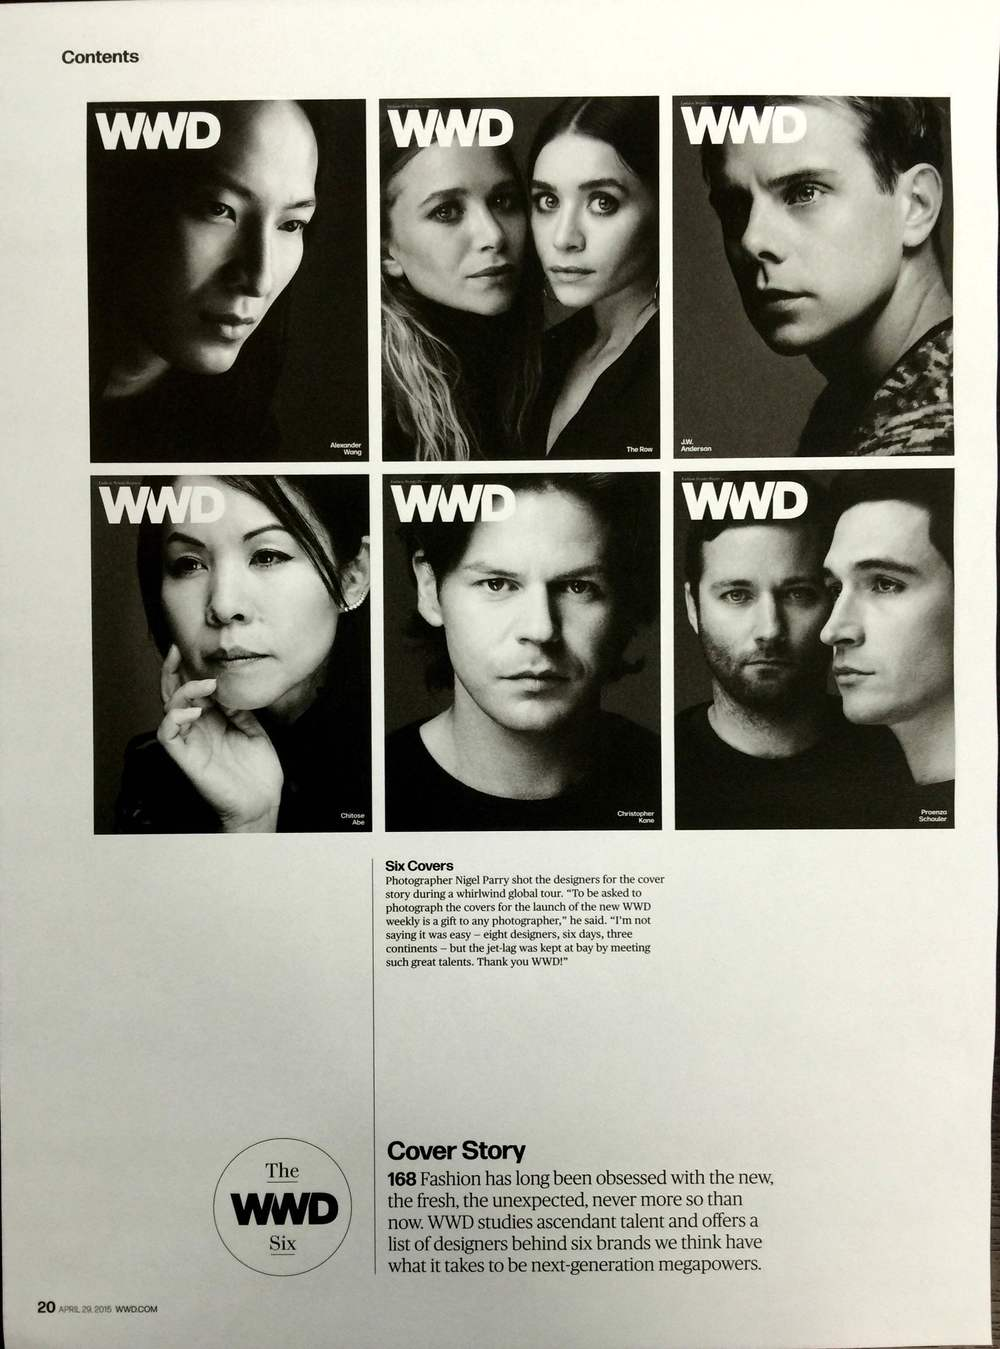 The inspiration for this week's team portraits came from an issue of Women's Wear Daily, beautifully shot in black and white by celebrity photographer Nigel Parry.